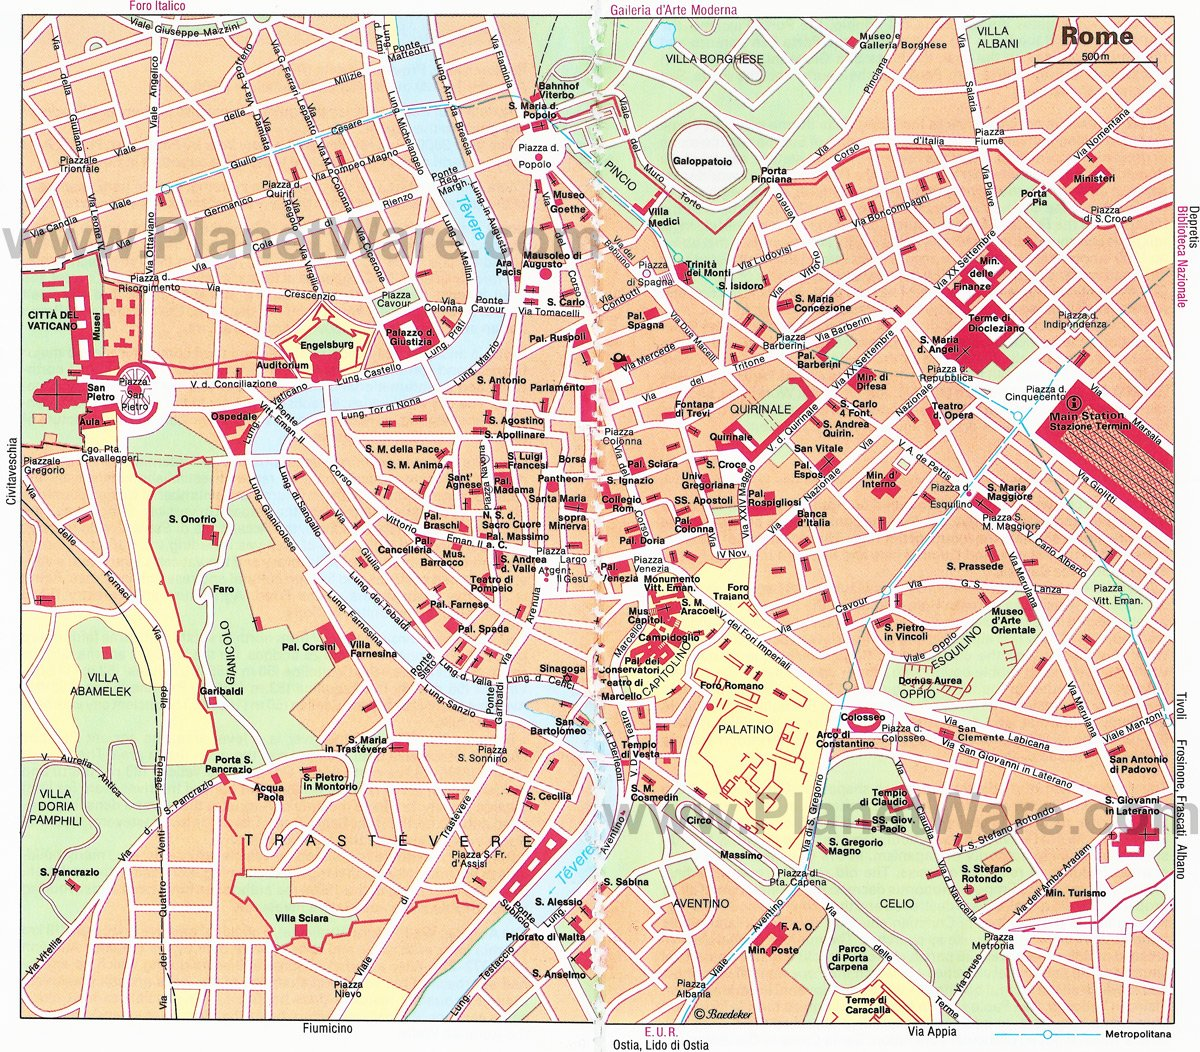 14 TopRated Tourist Attractions in Rome – Map Of Rome For Tourists